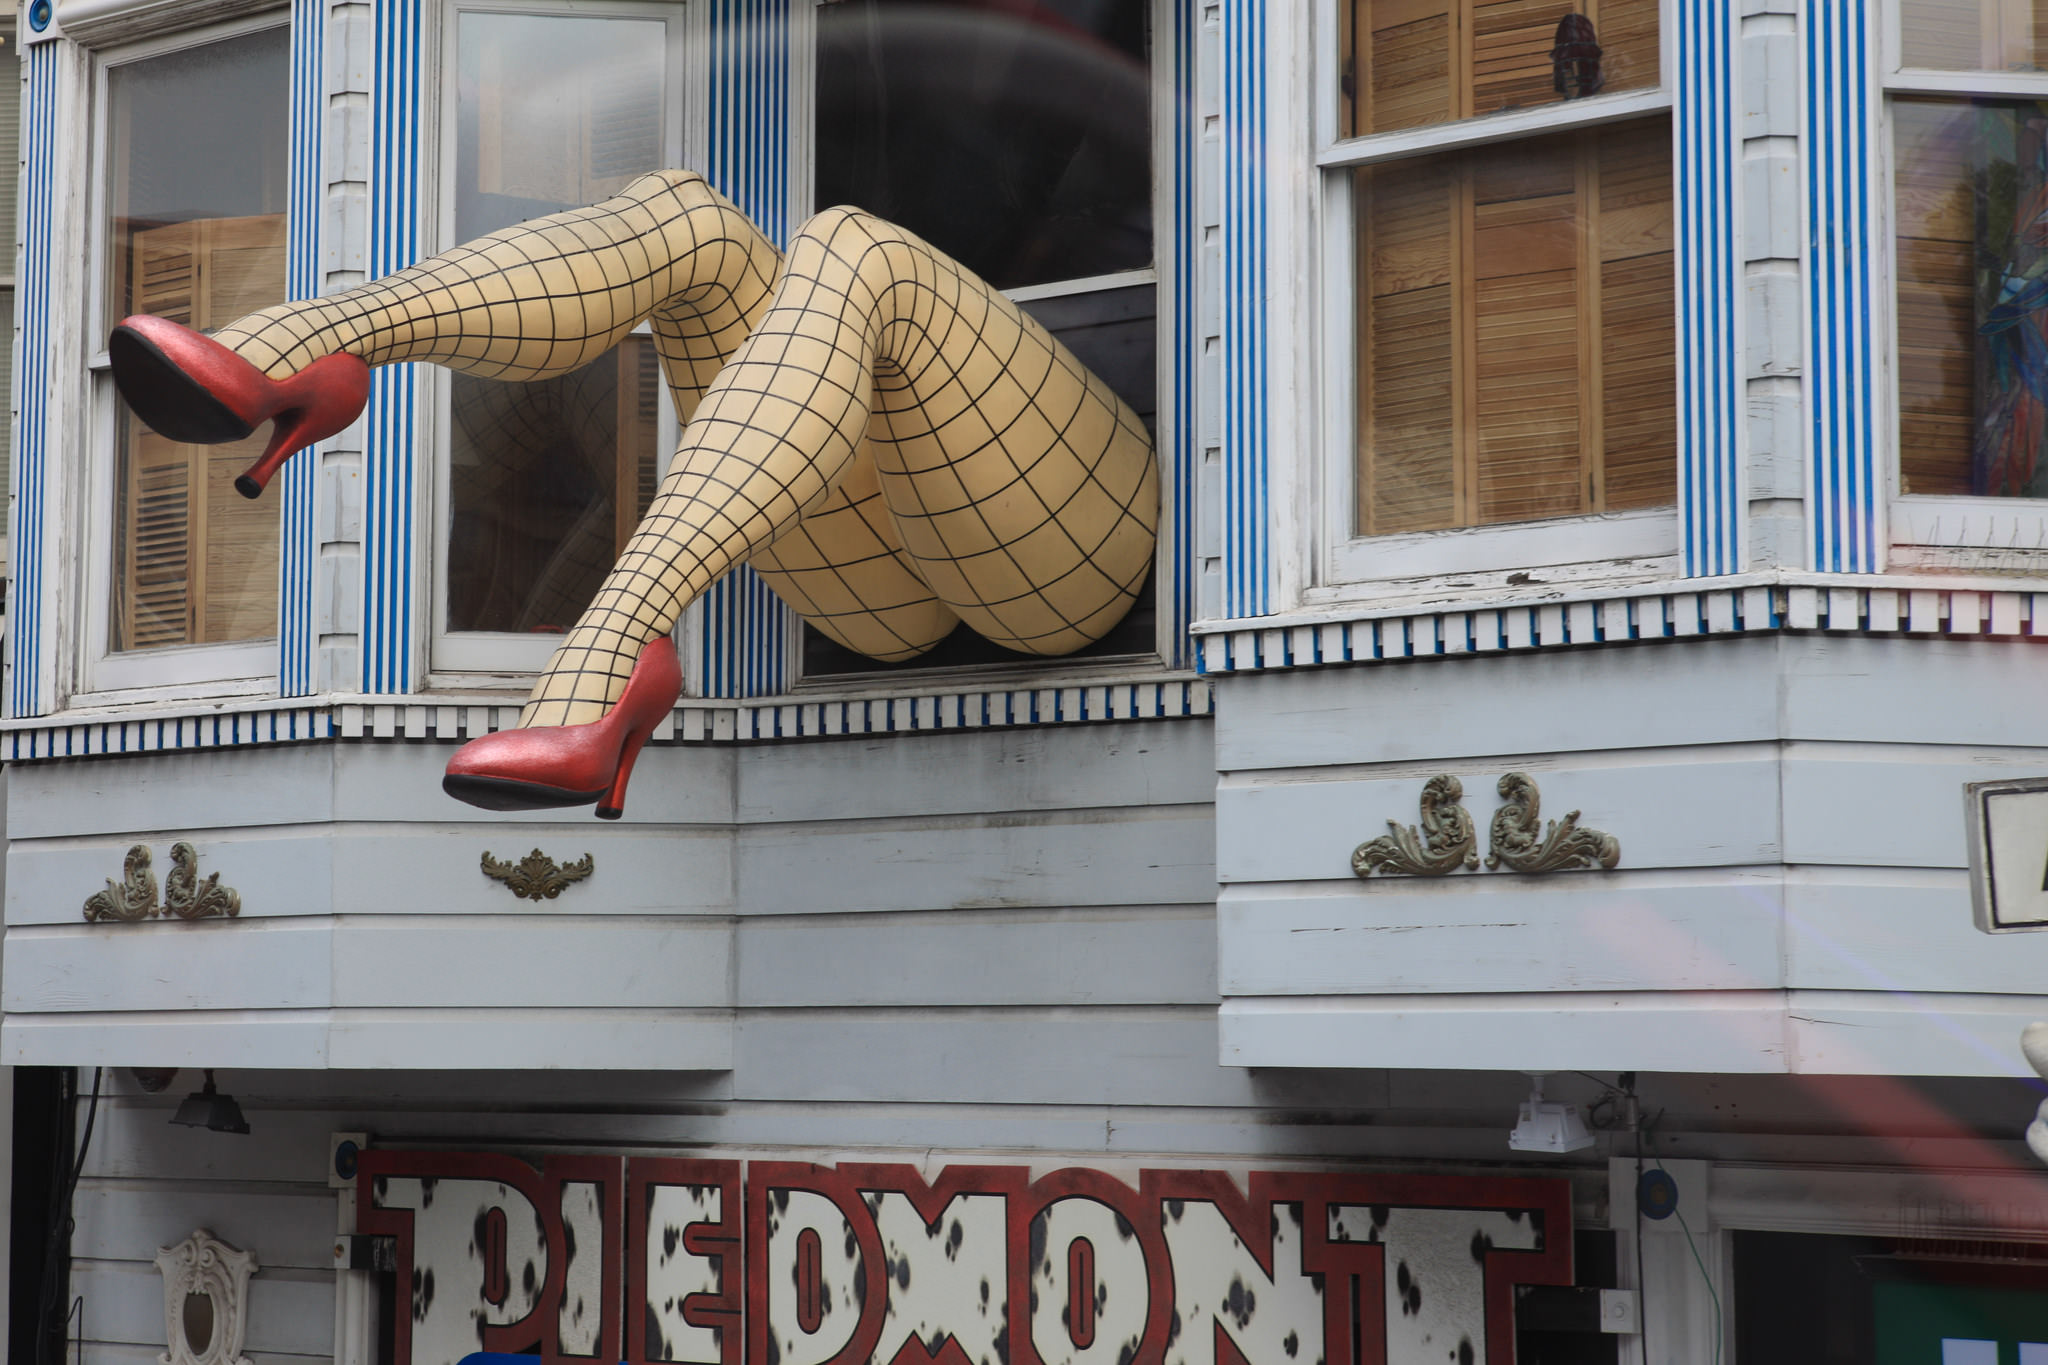 San Francisco Haunted Tours